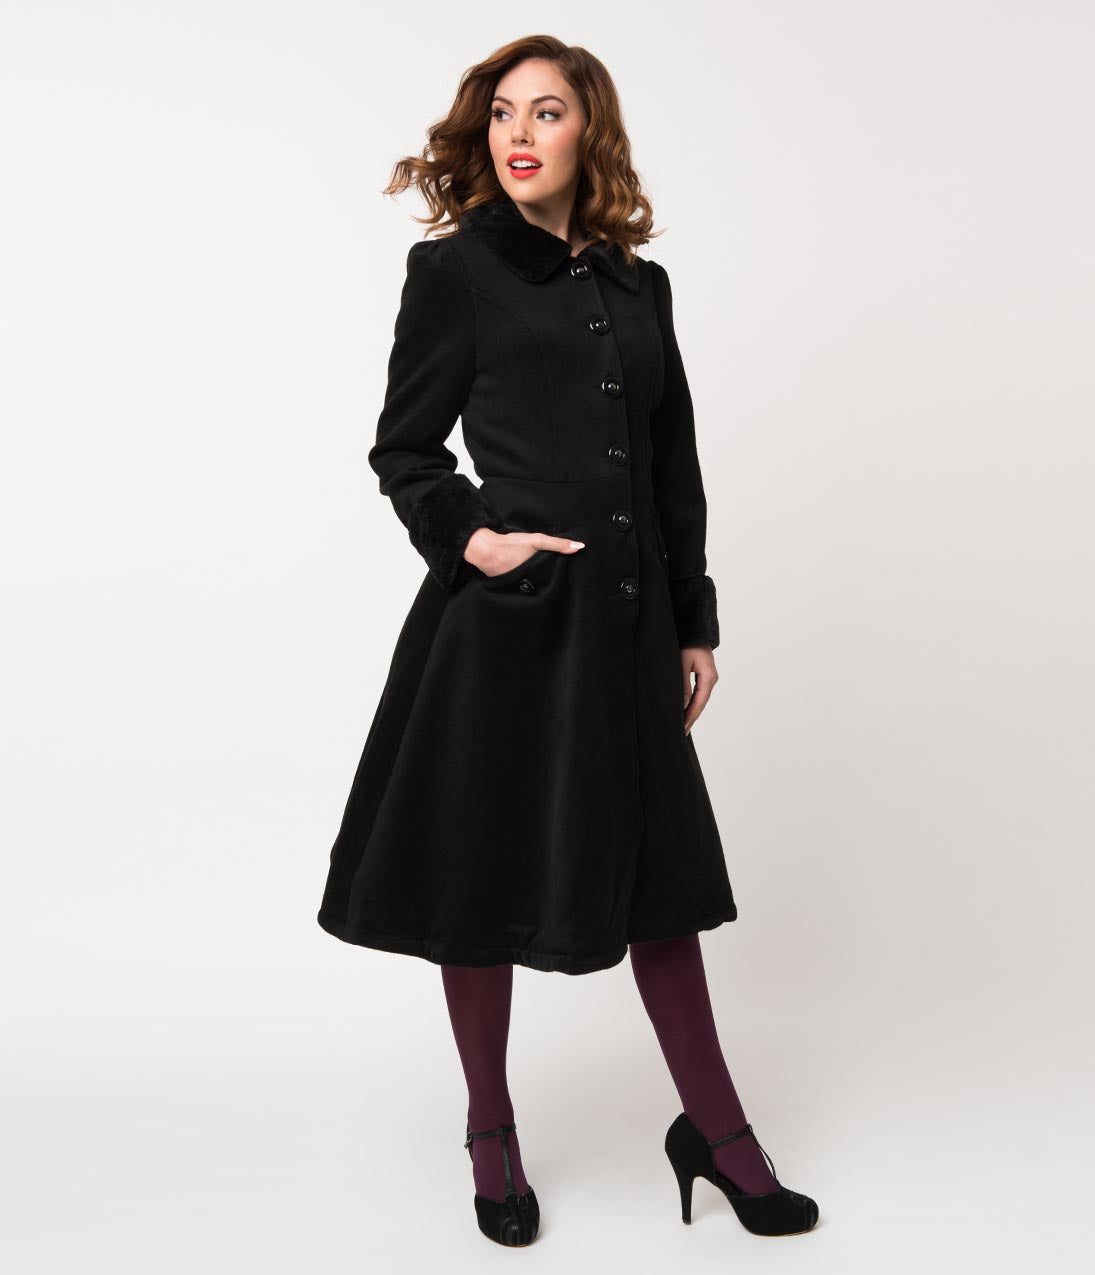 What Did Women Wear in the 1950s? 1950s Fashion Guide Vintage Style Black Felt  Fur Button Up Collette Coat $98.00 AT vintagedancer.com